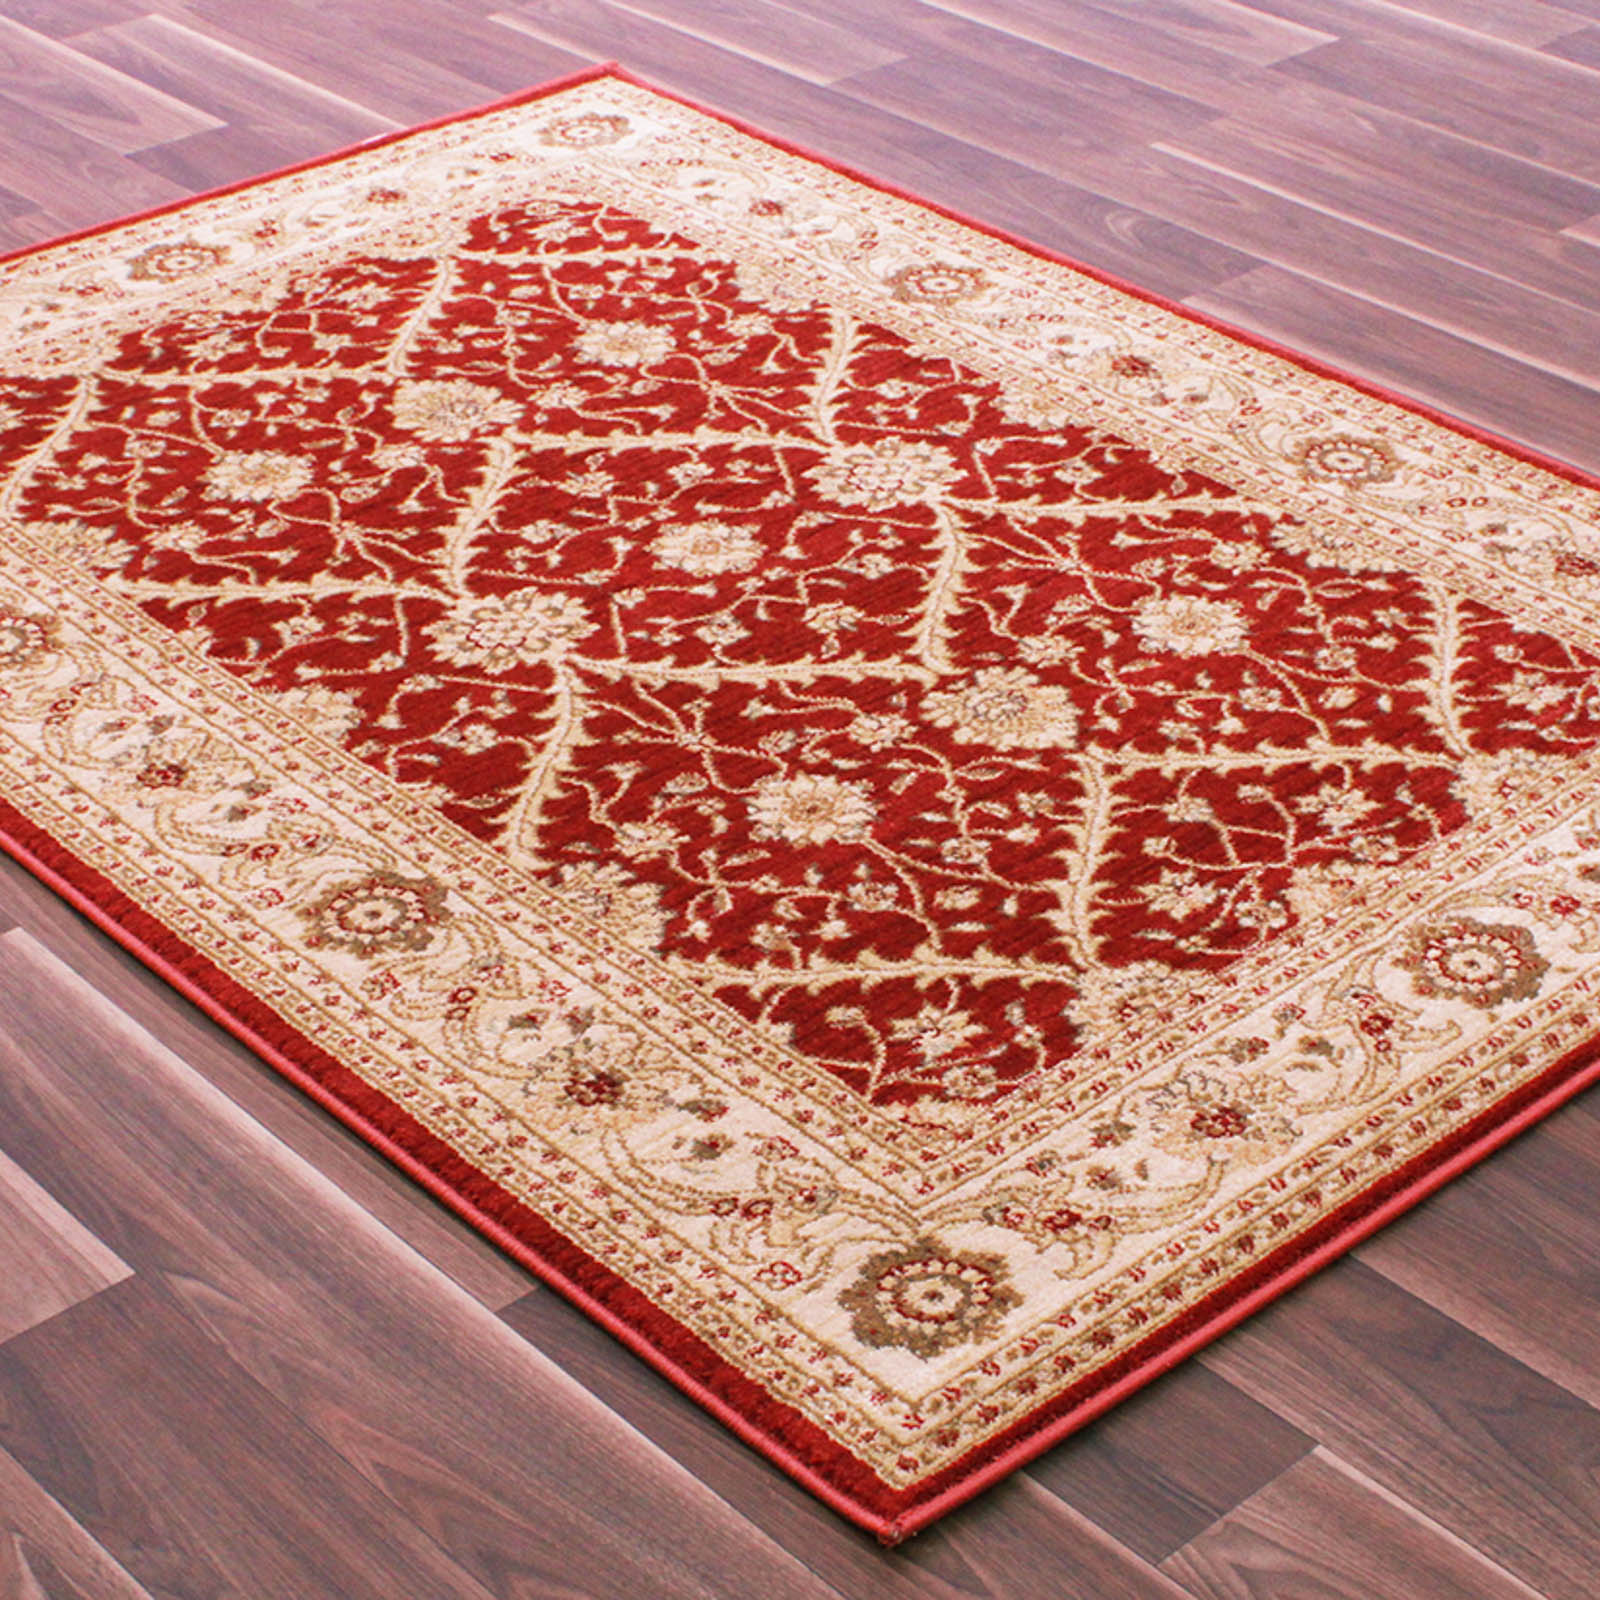 Vintage Traditional Rugs 7707 in Red and Ivory